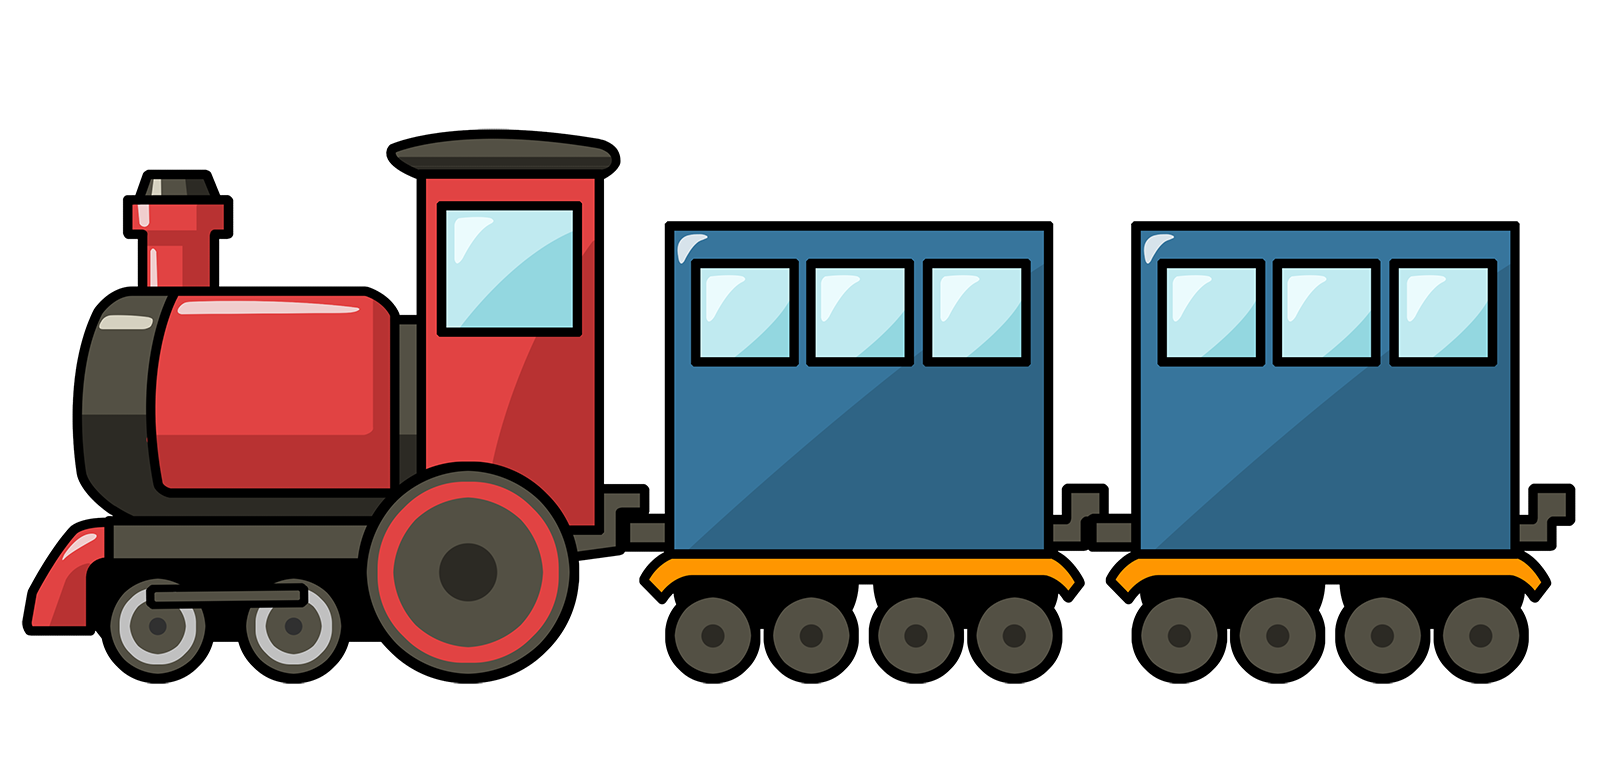 Cartoon Train | Free Cute Cartoon Train Clip Art | Cartoon Trains ...